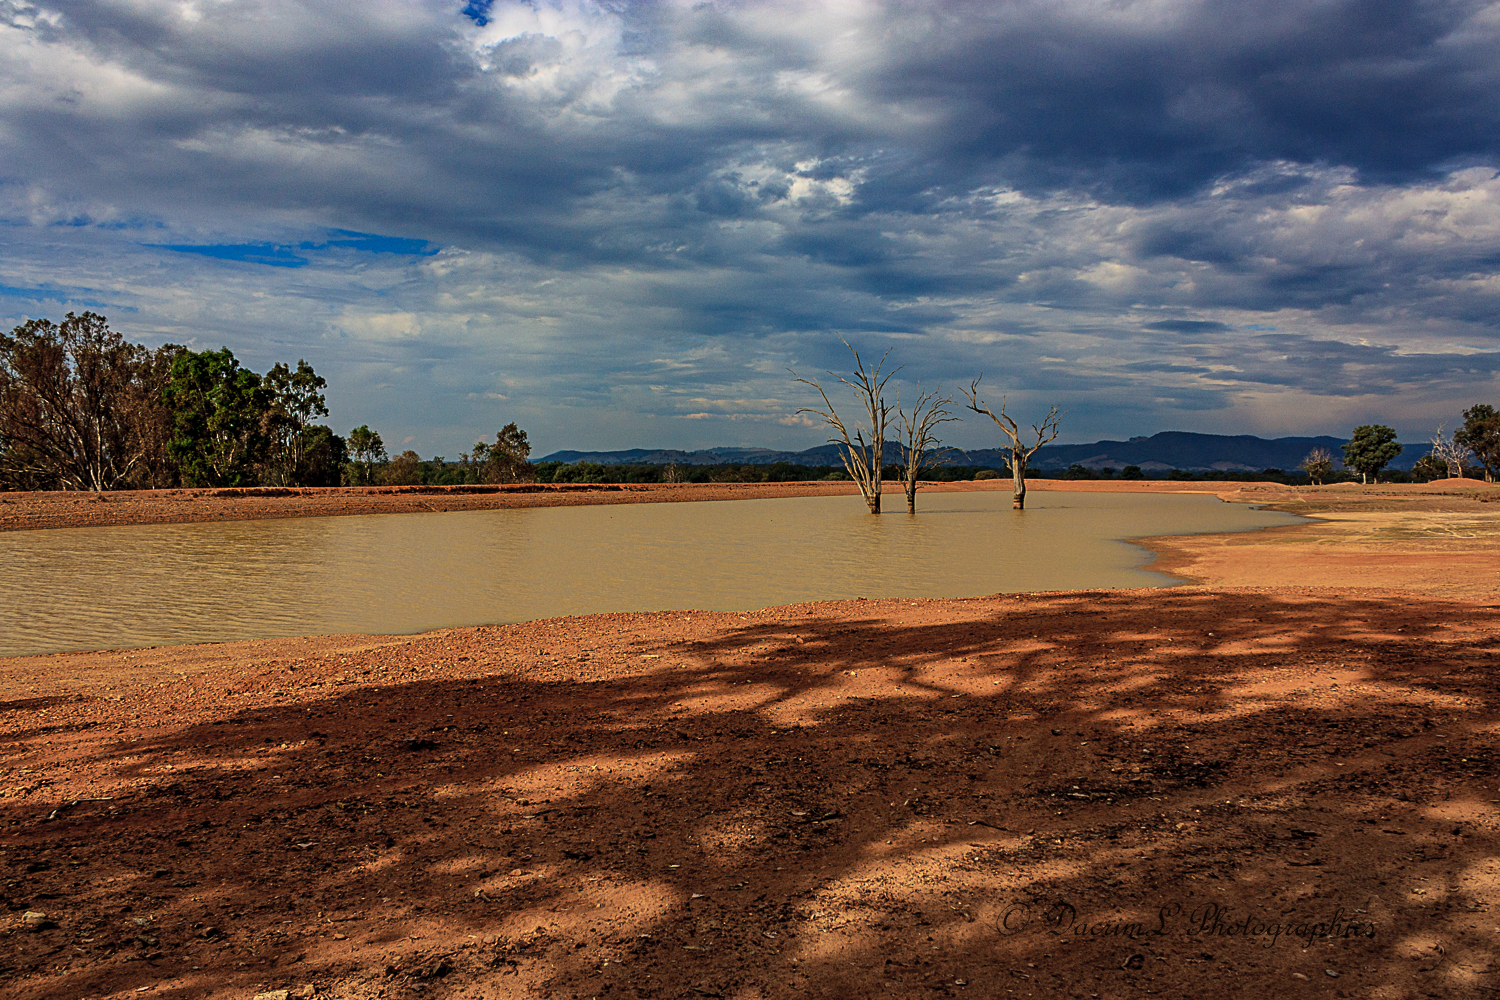 Storm clouds over a Drought Stricken Land